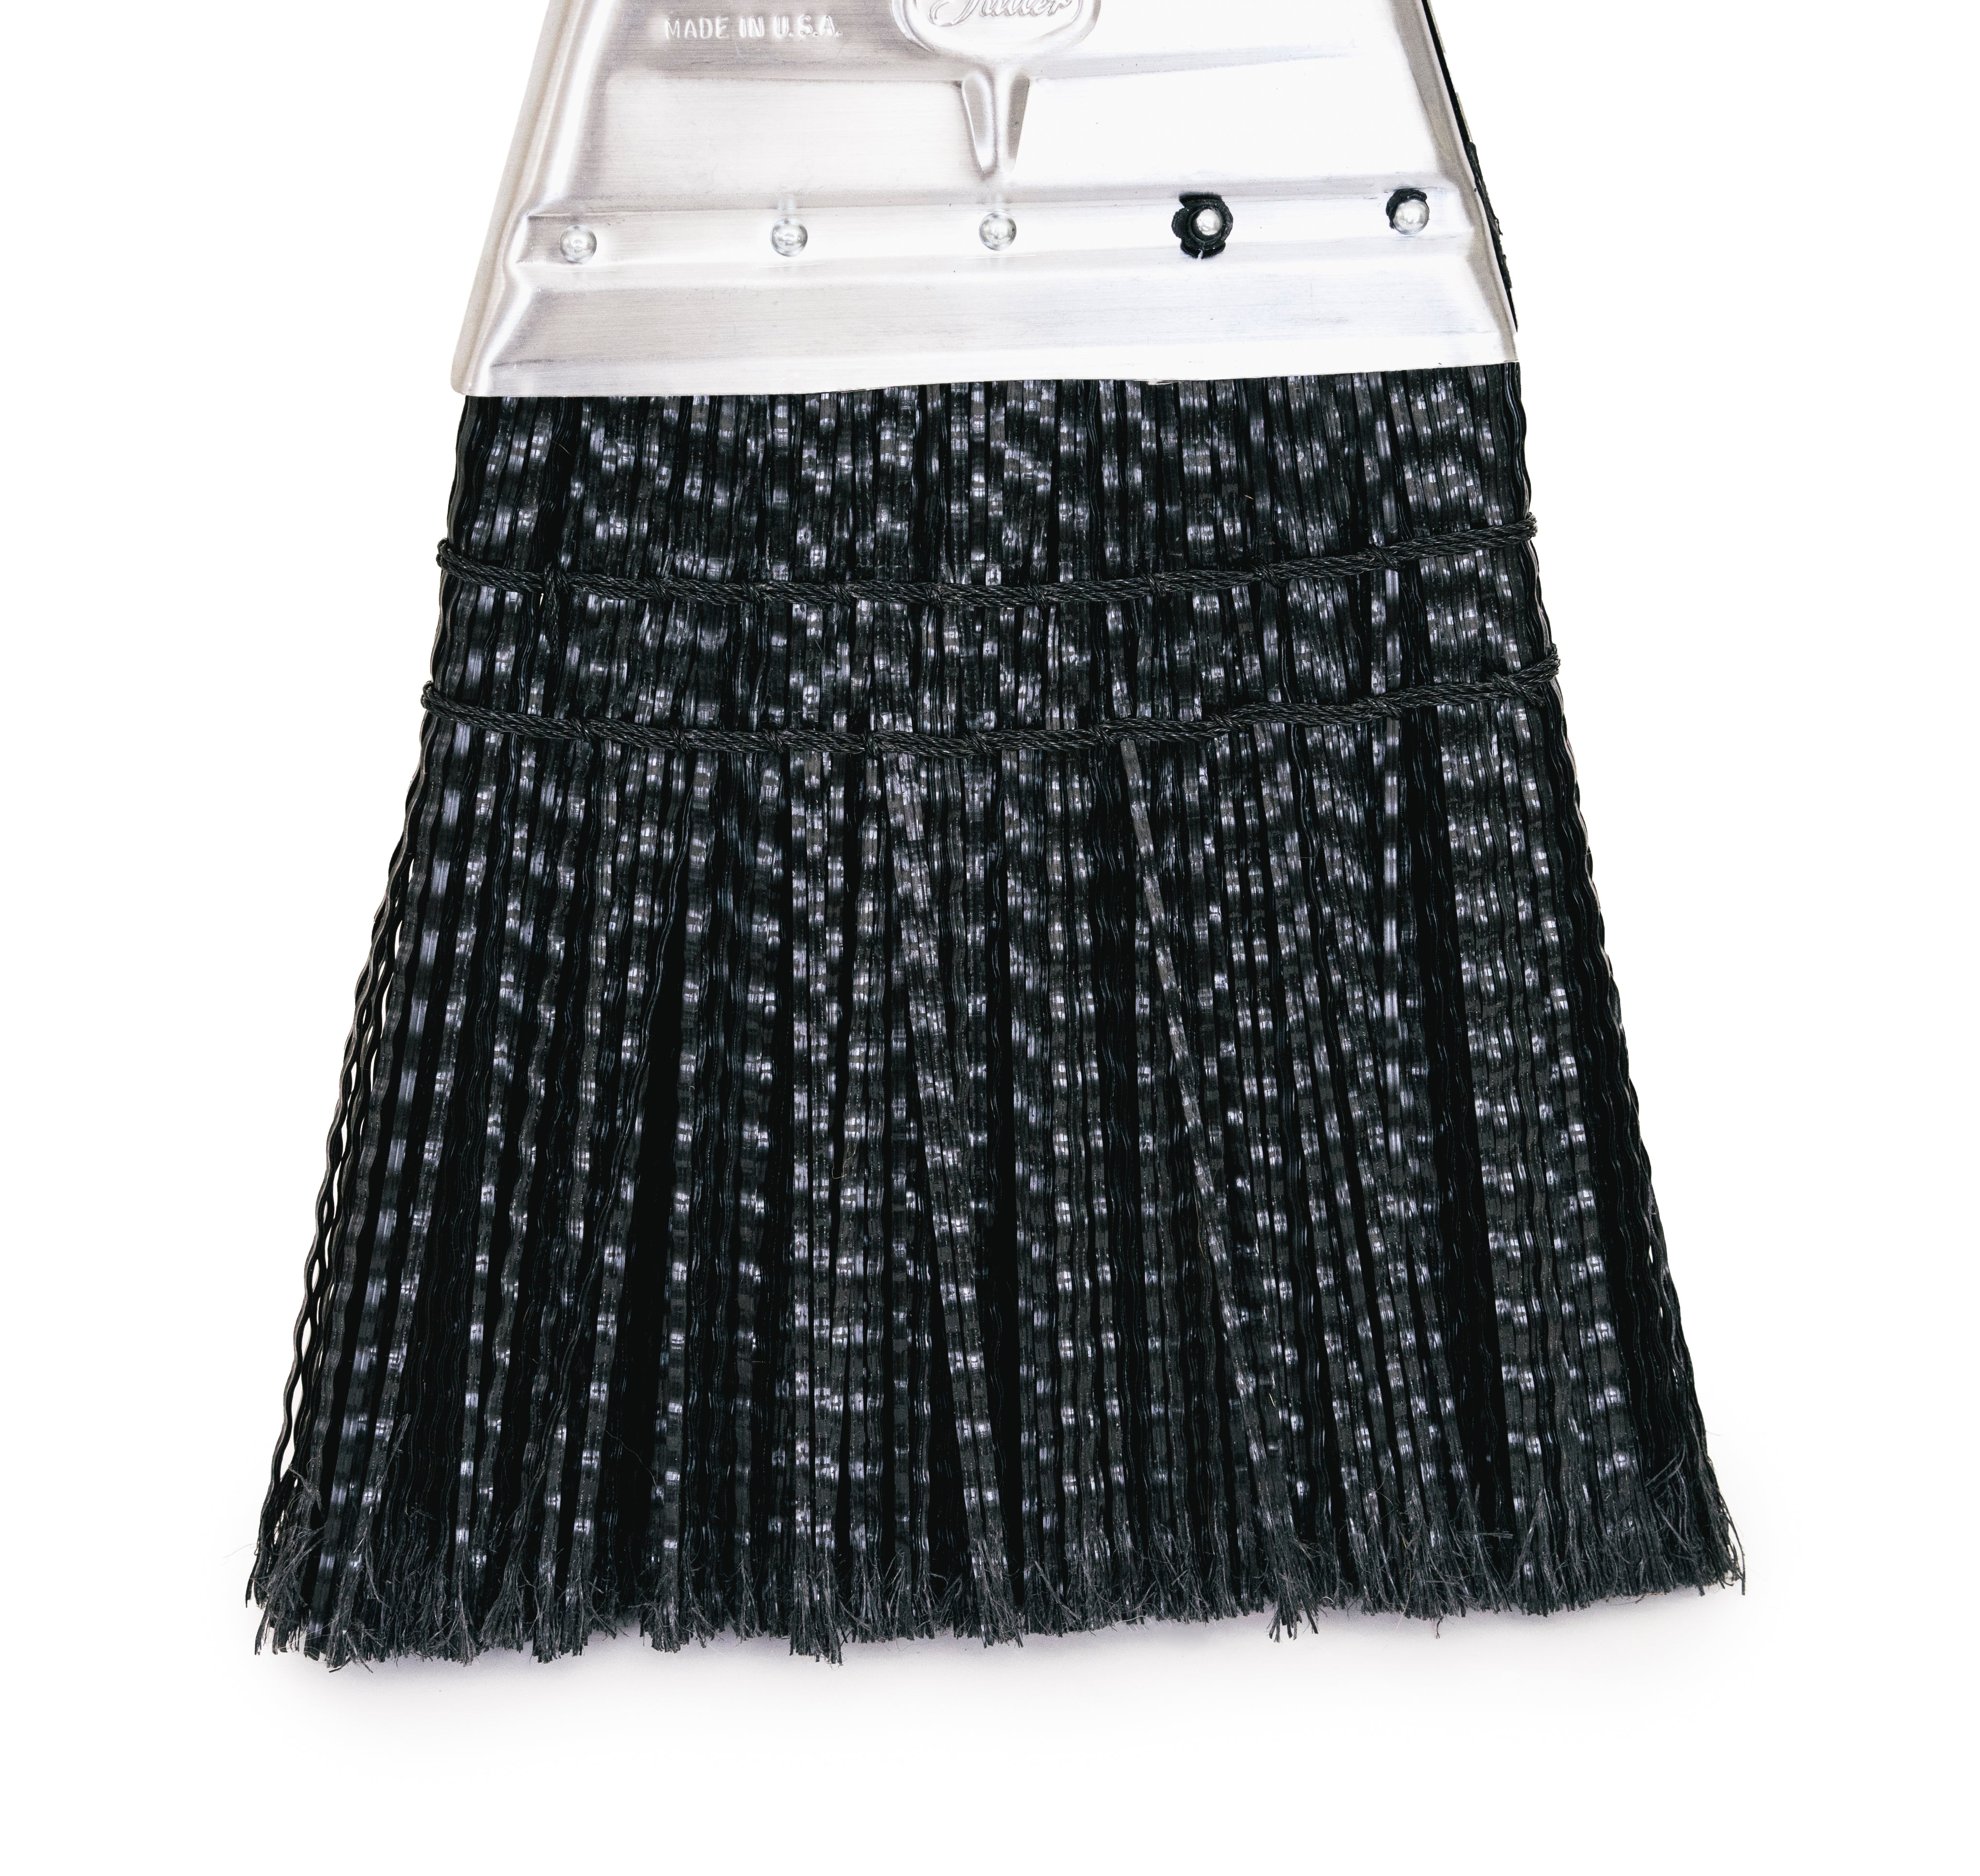 Household Broom With Long lasting Polypropylene Bristles Indoor/Outdoor